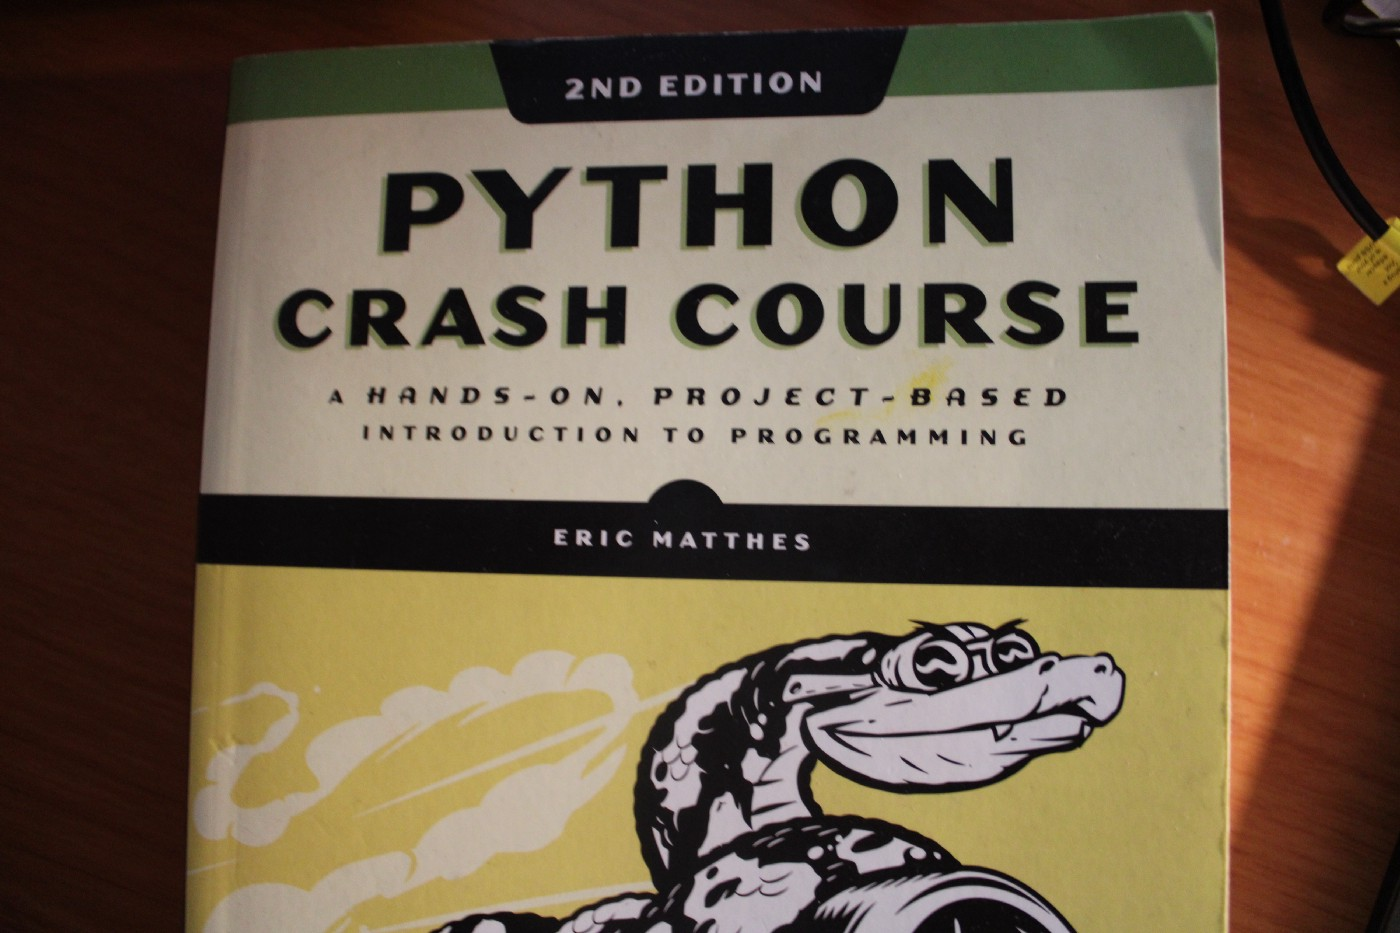 Python Crash Course, 2nd Ed, by Eric Matthes